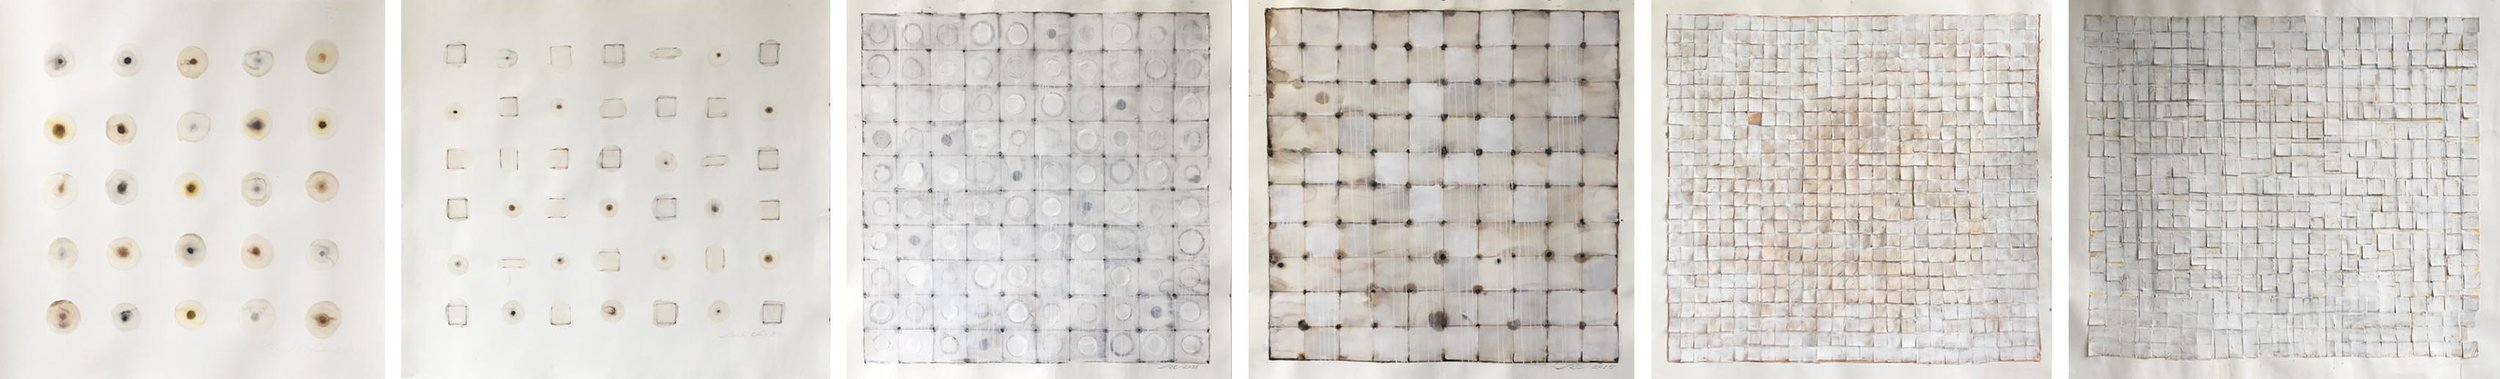 IMAGE ABOVE: Ronald Chase,  Decayed Circles , 2016, 4 x 4 feet, Watercolor, plaster, ink, acrylic on paper